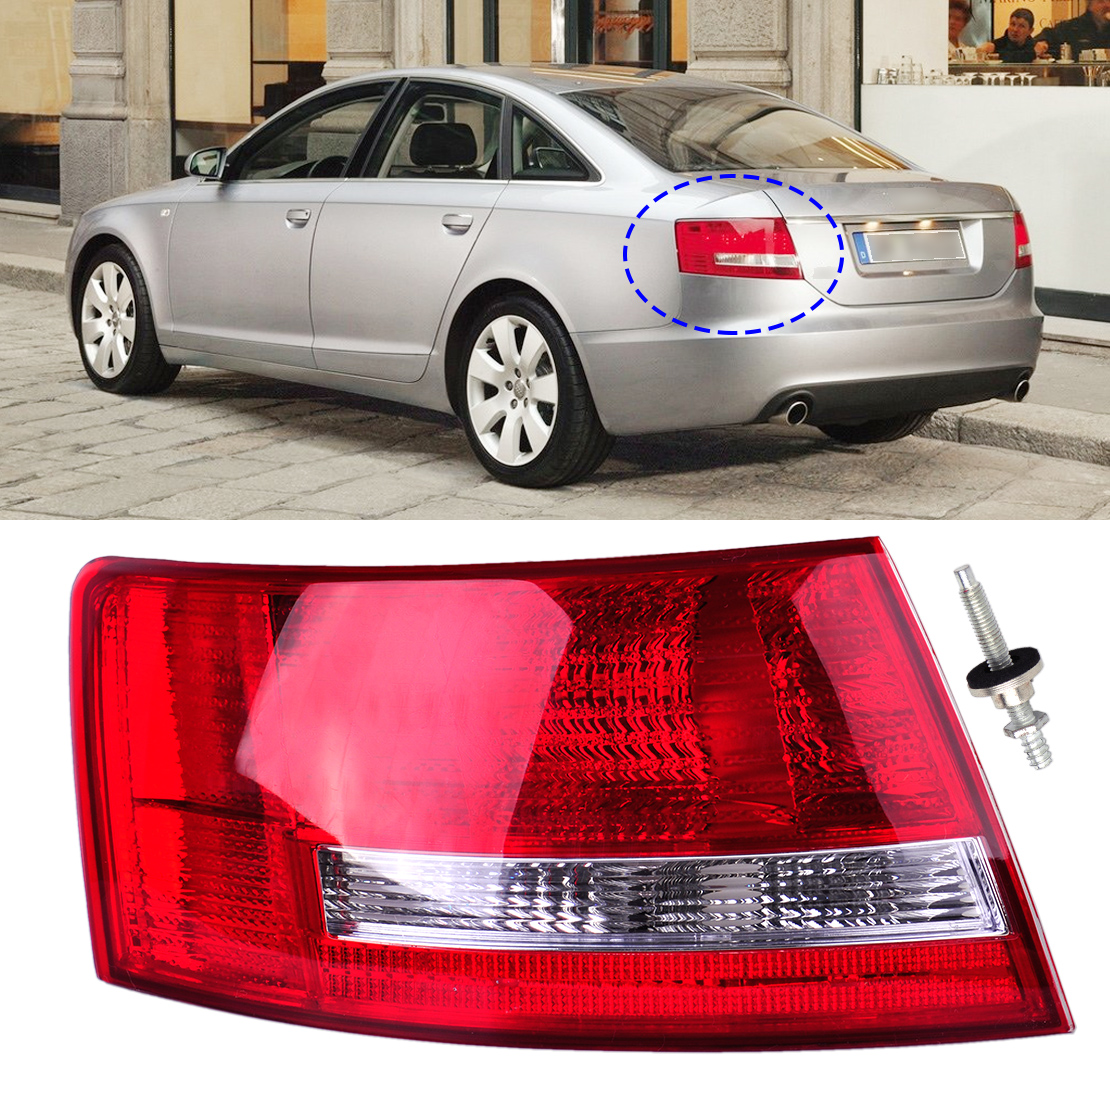 small resolution of online shop citall left tail light assembly lamp housing without bulb for audi a6 quattro sedan 2005 2006 2007 2008 4f5945095l 4f5945095d aliexpress